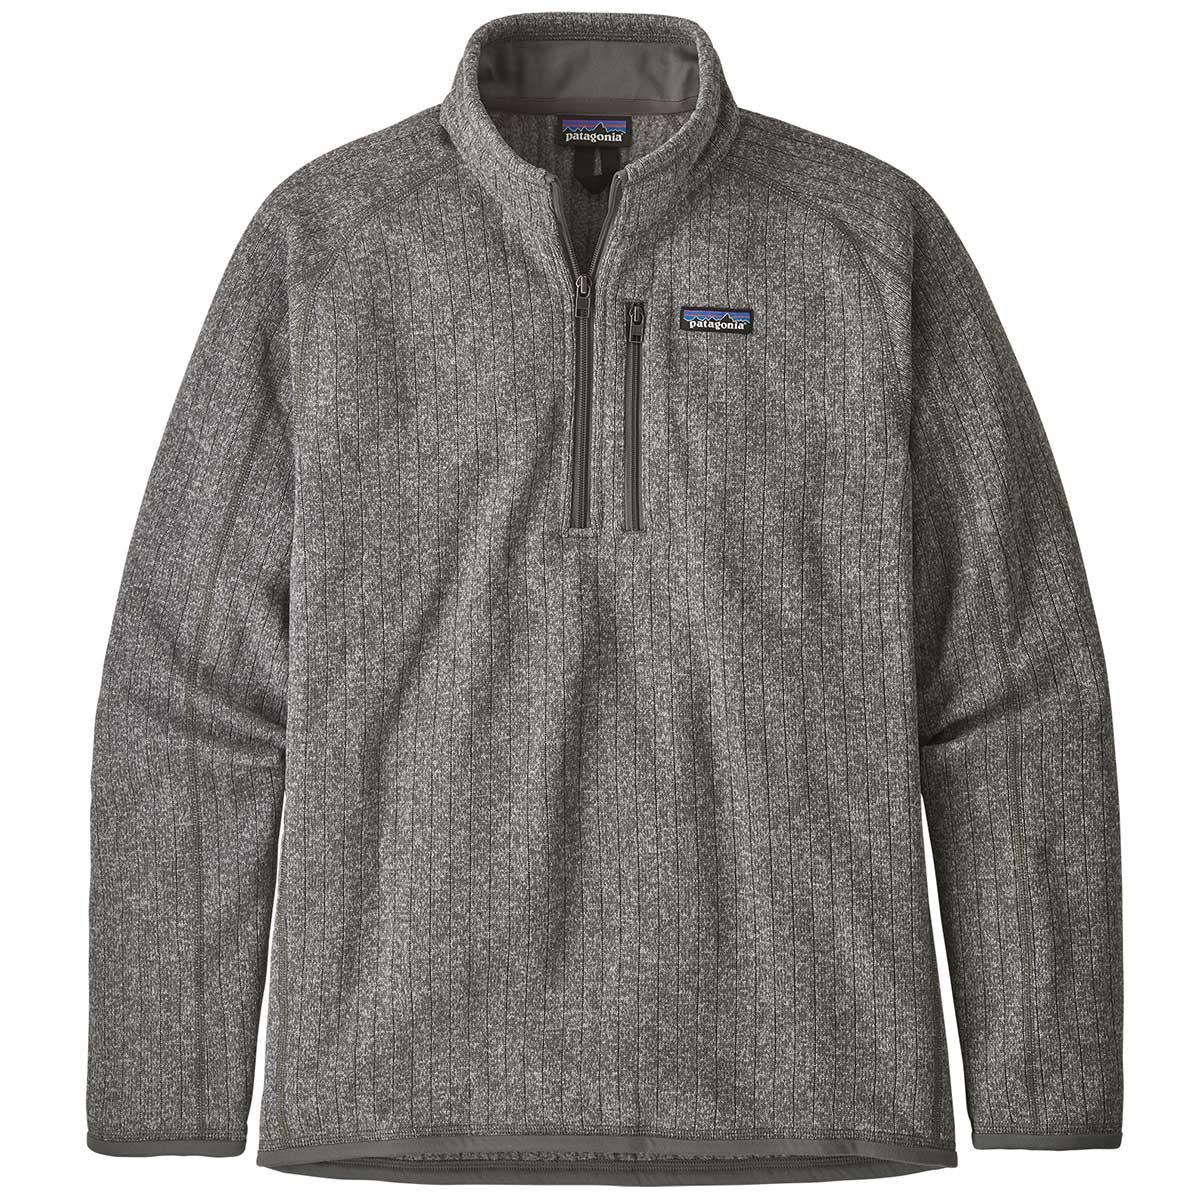 Patagonia men's Better Sweater Rib Knit 1/4 Zip in Stonewash front view